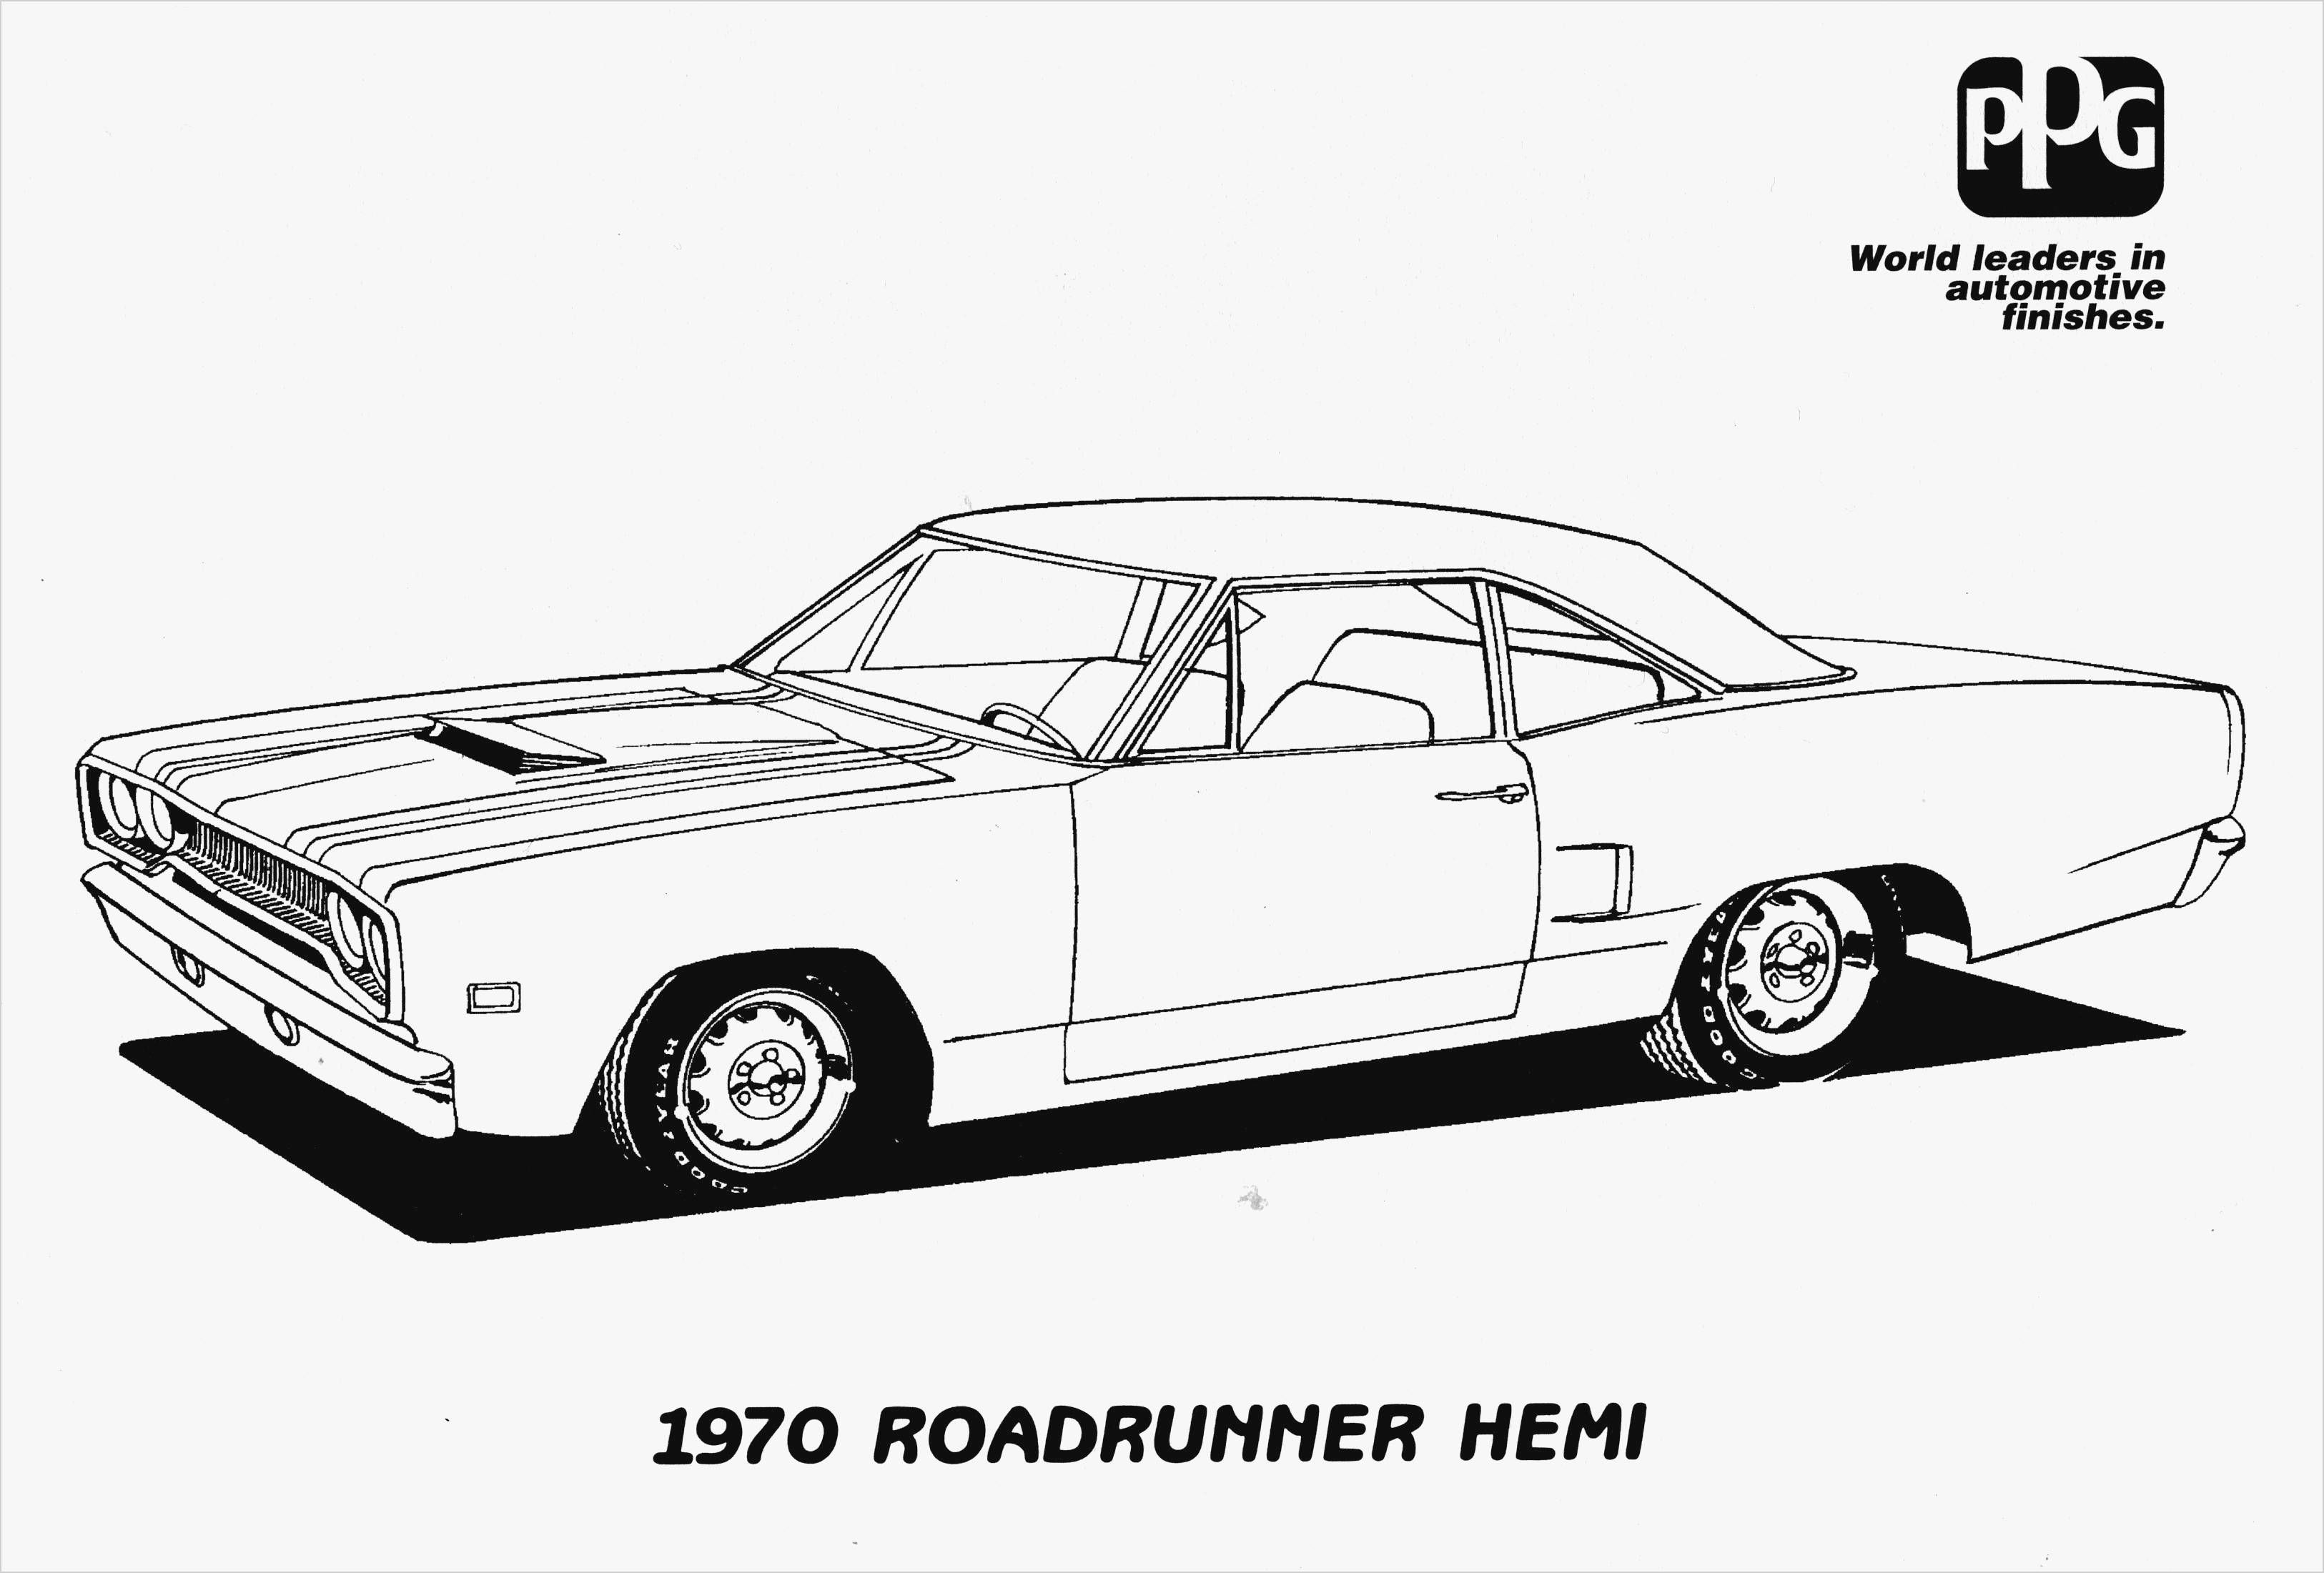 Muscle Car Coloring Pages Muscle Car Coloring Pages Valid Muscle Car Coloring Pages To And Entitlementtrap Com Cars Coloring Pages Old School Cars Old Classic Cars